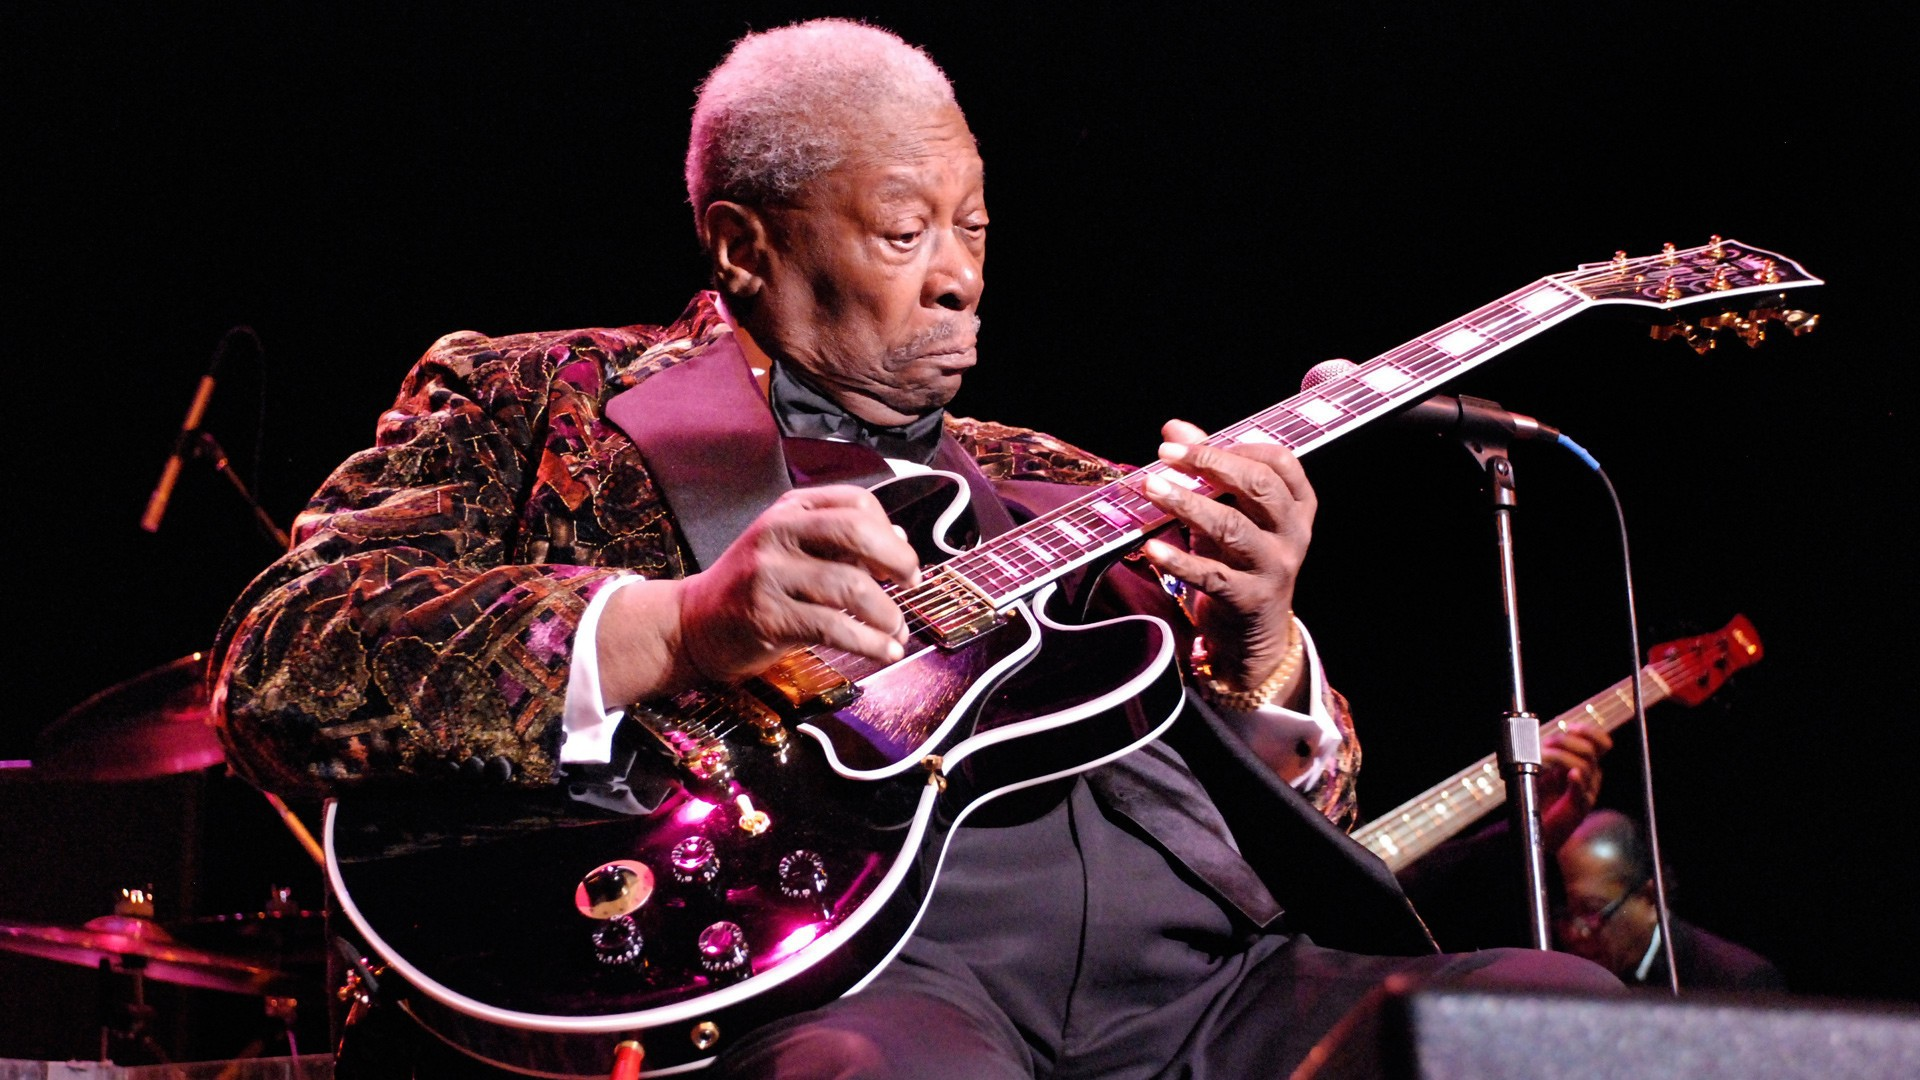 BB King musician wallpapers and images   wallpapers 1920x1080